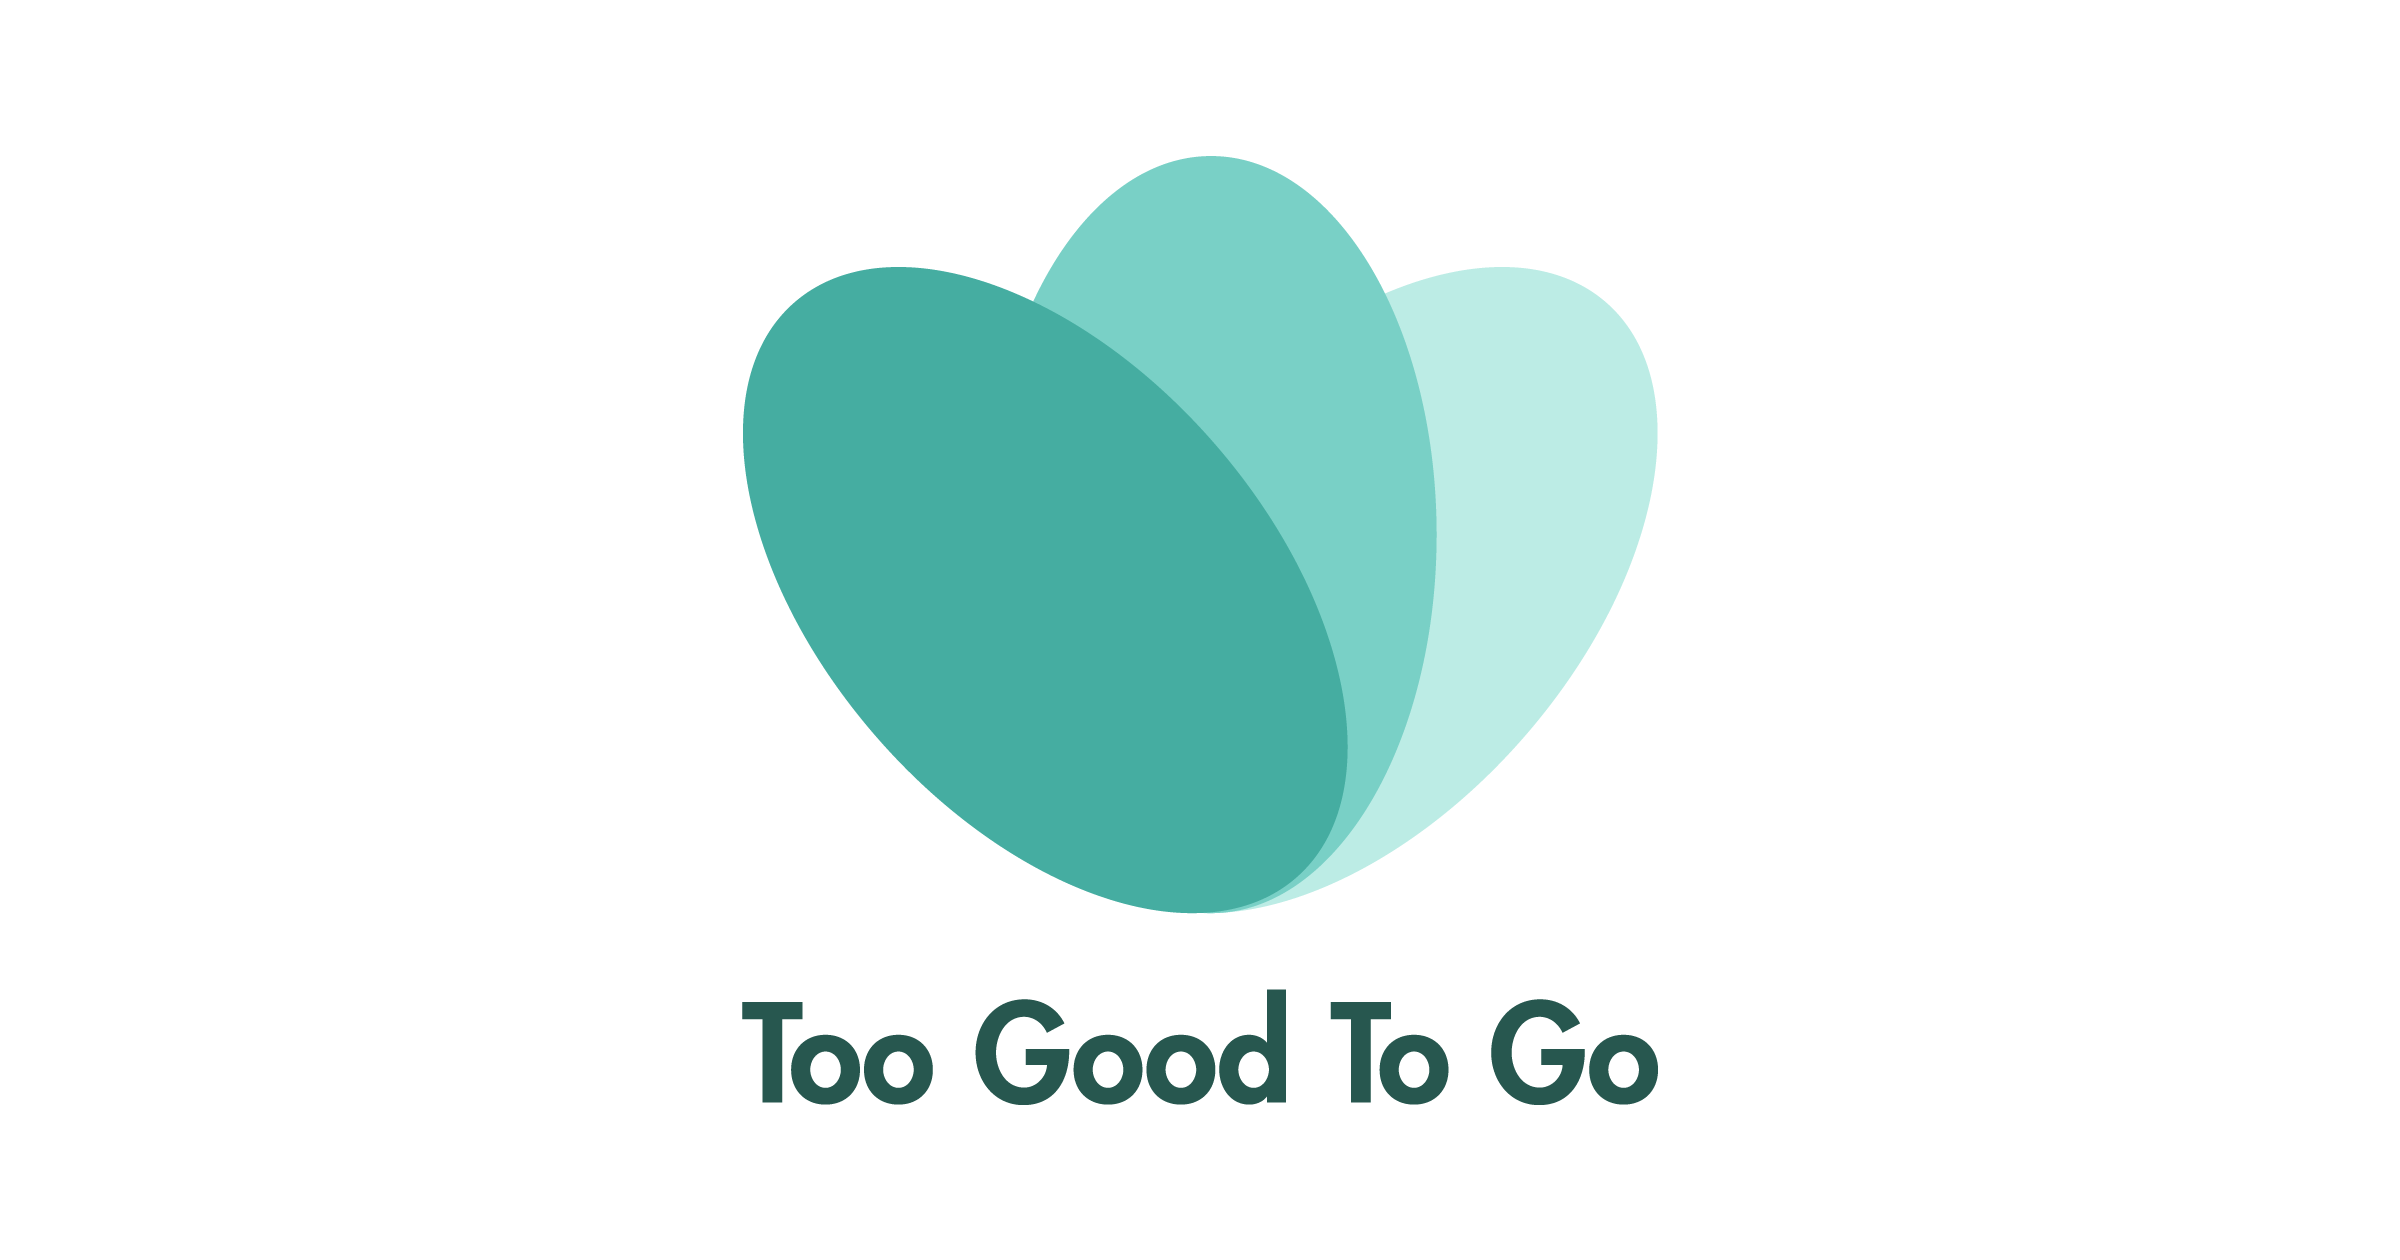 too good to go apps logo